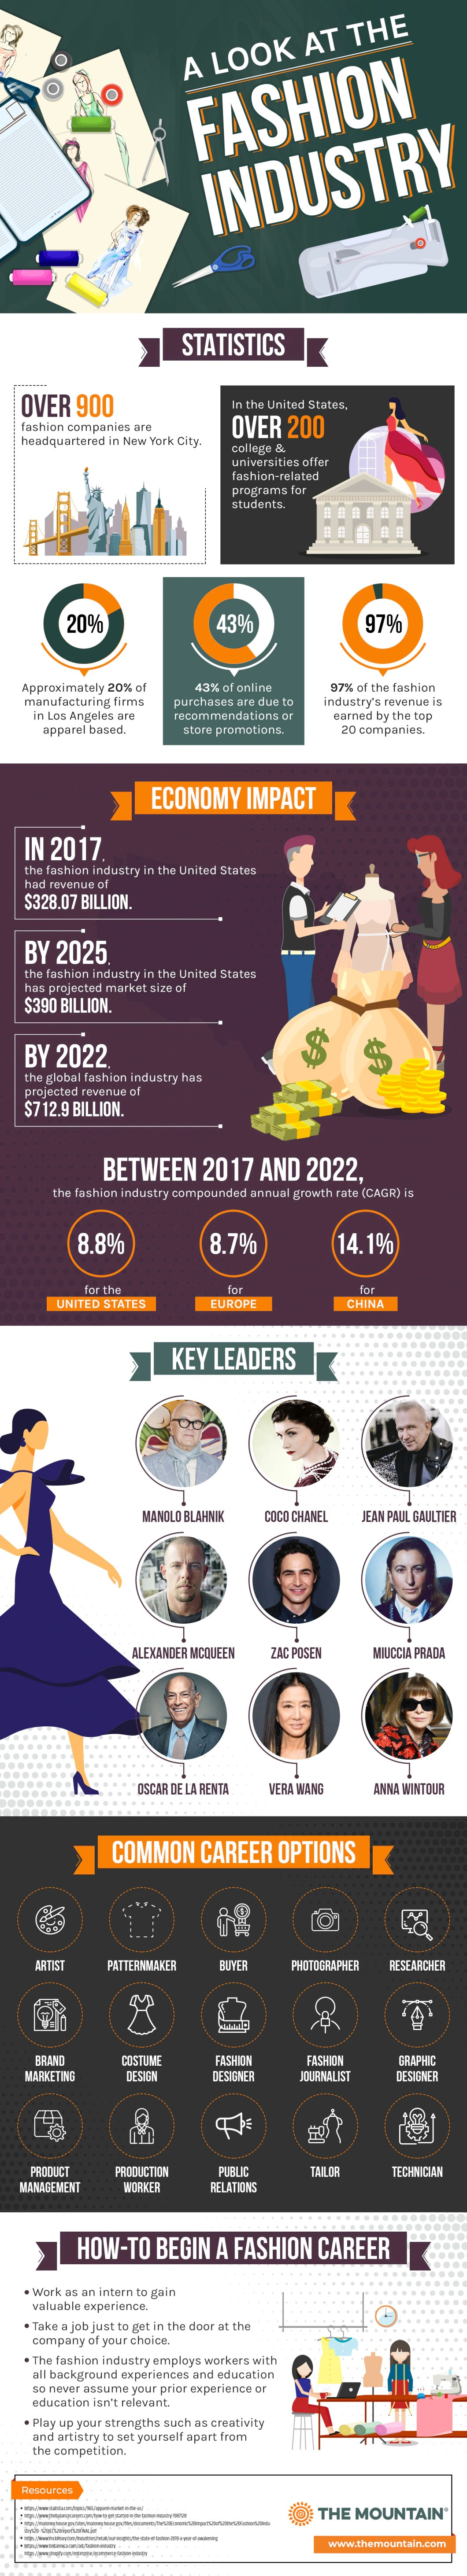 Want a Career in Fashion? A Profile of the Fashion Industry - Infographic